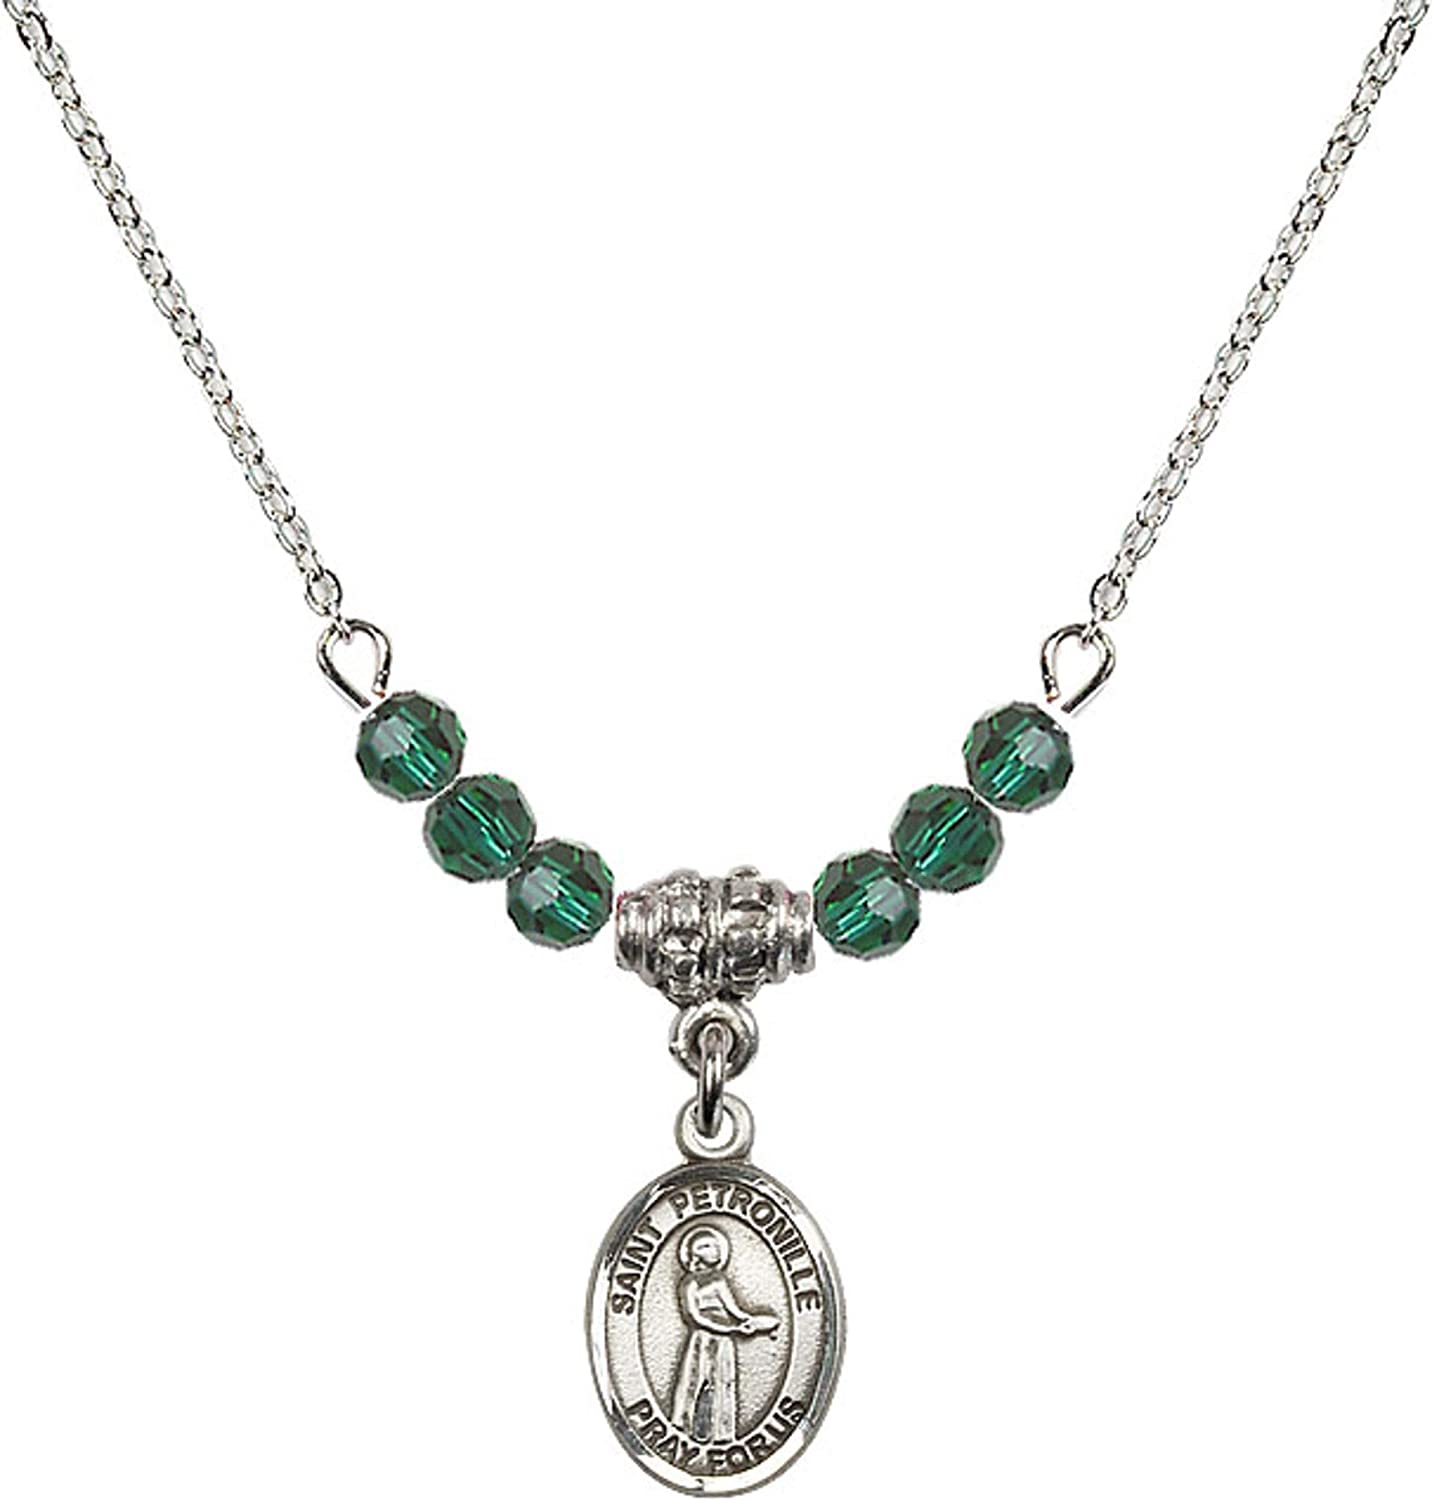 Bonyak Jewelry 18 Inch Rhodium Plated Necklace w// 4mm Green May Birth Month Stone Beads and Saint Petronille Charm